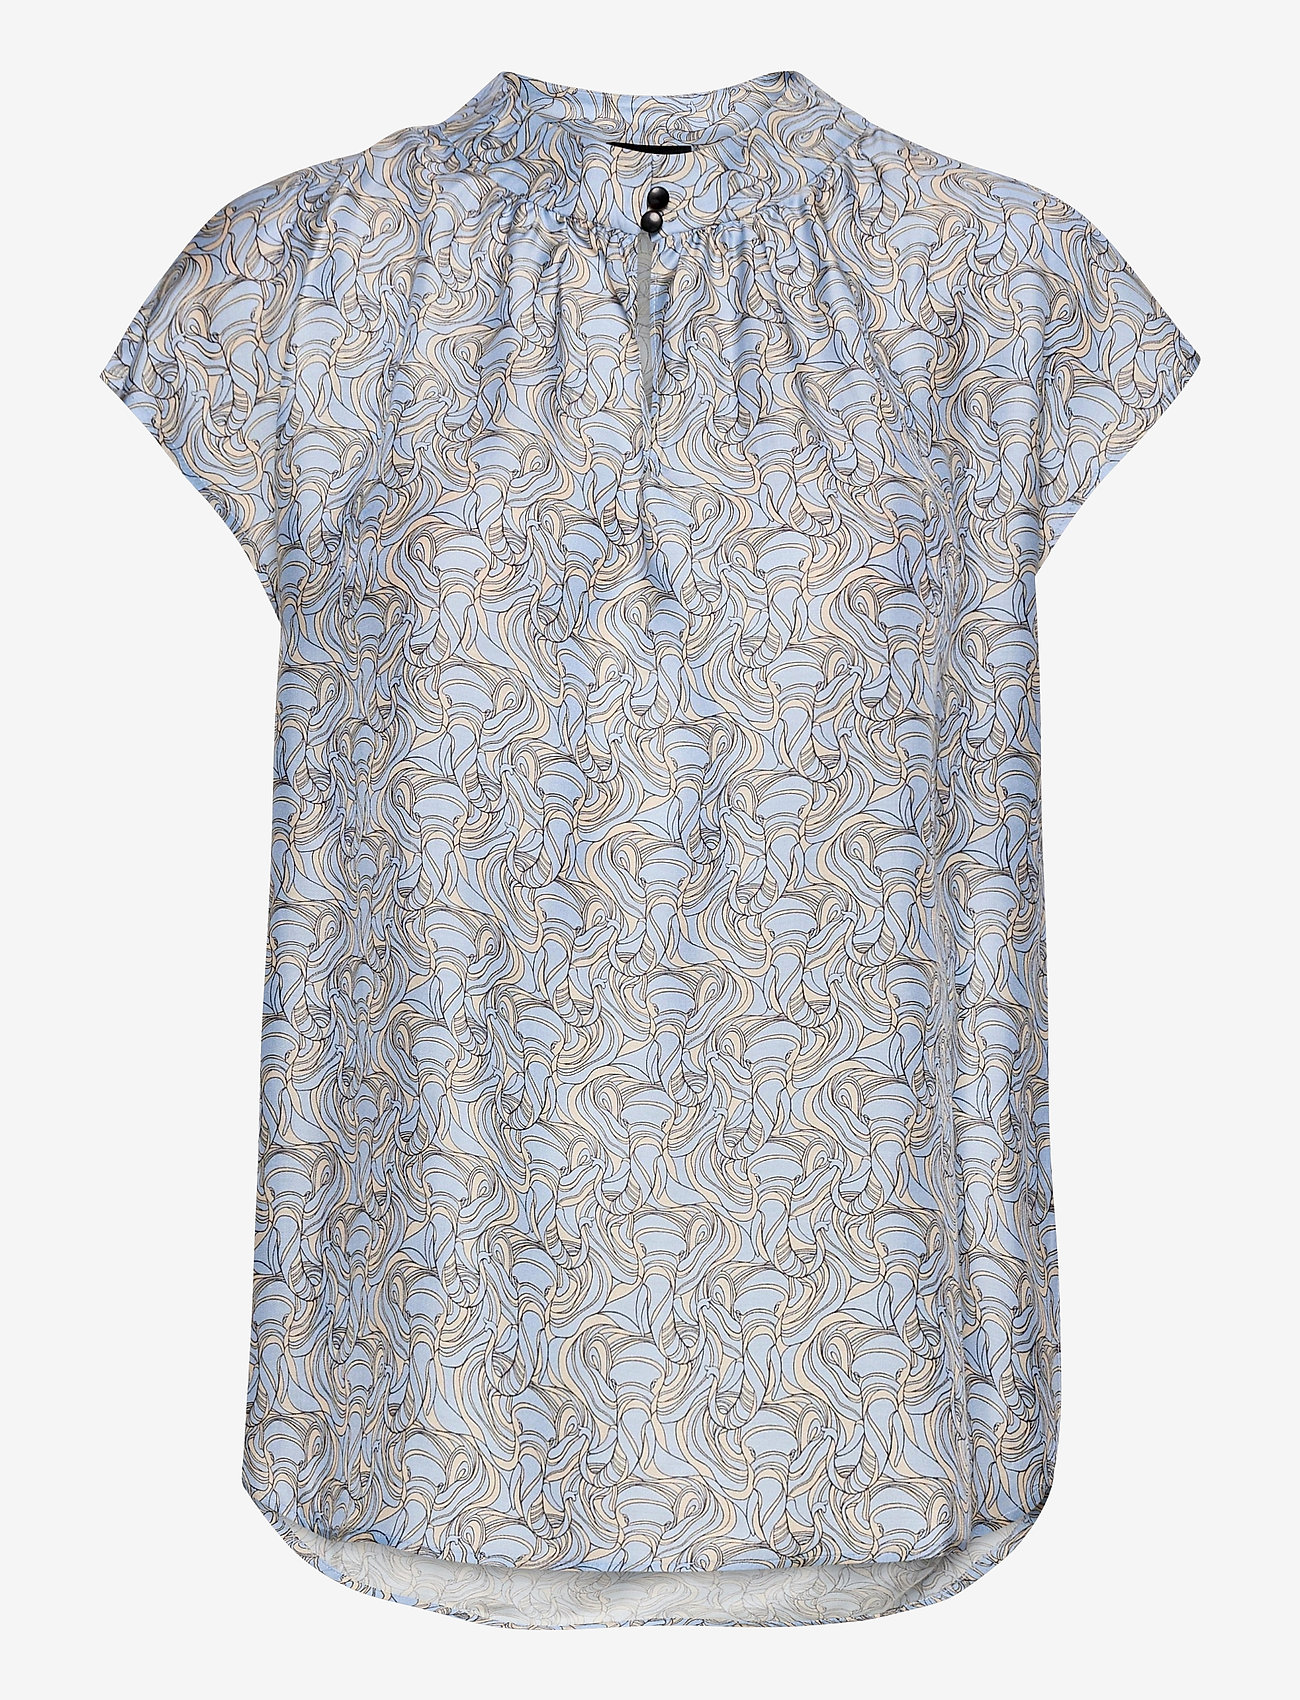 SAND - 3418 - Prosi Top S - blouses à manches courtes - pattern - 0